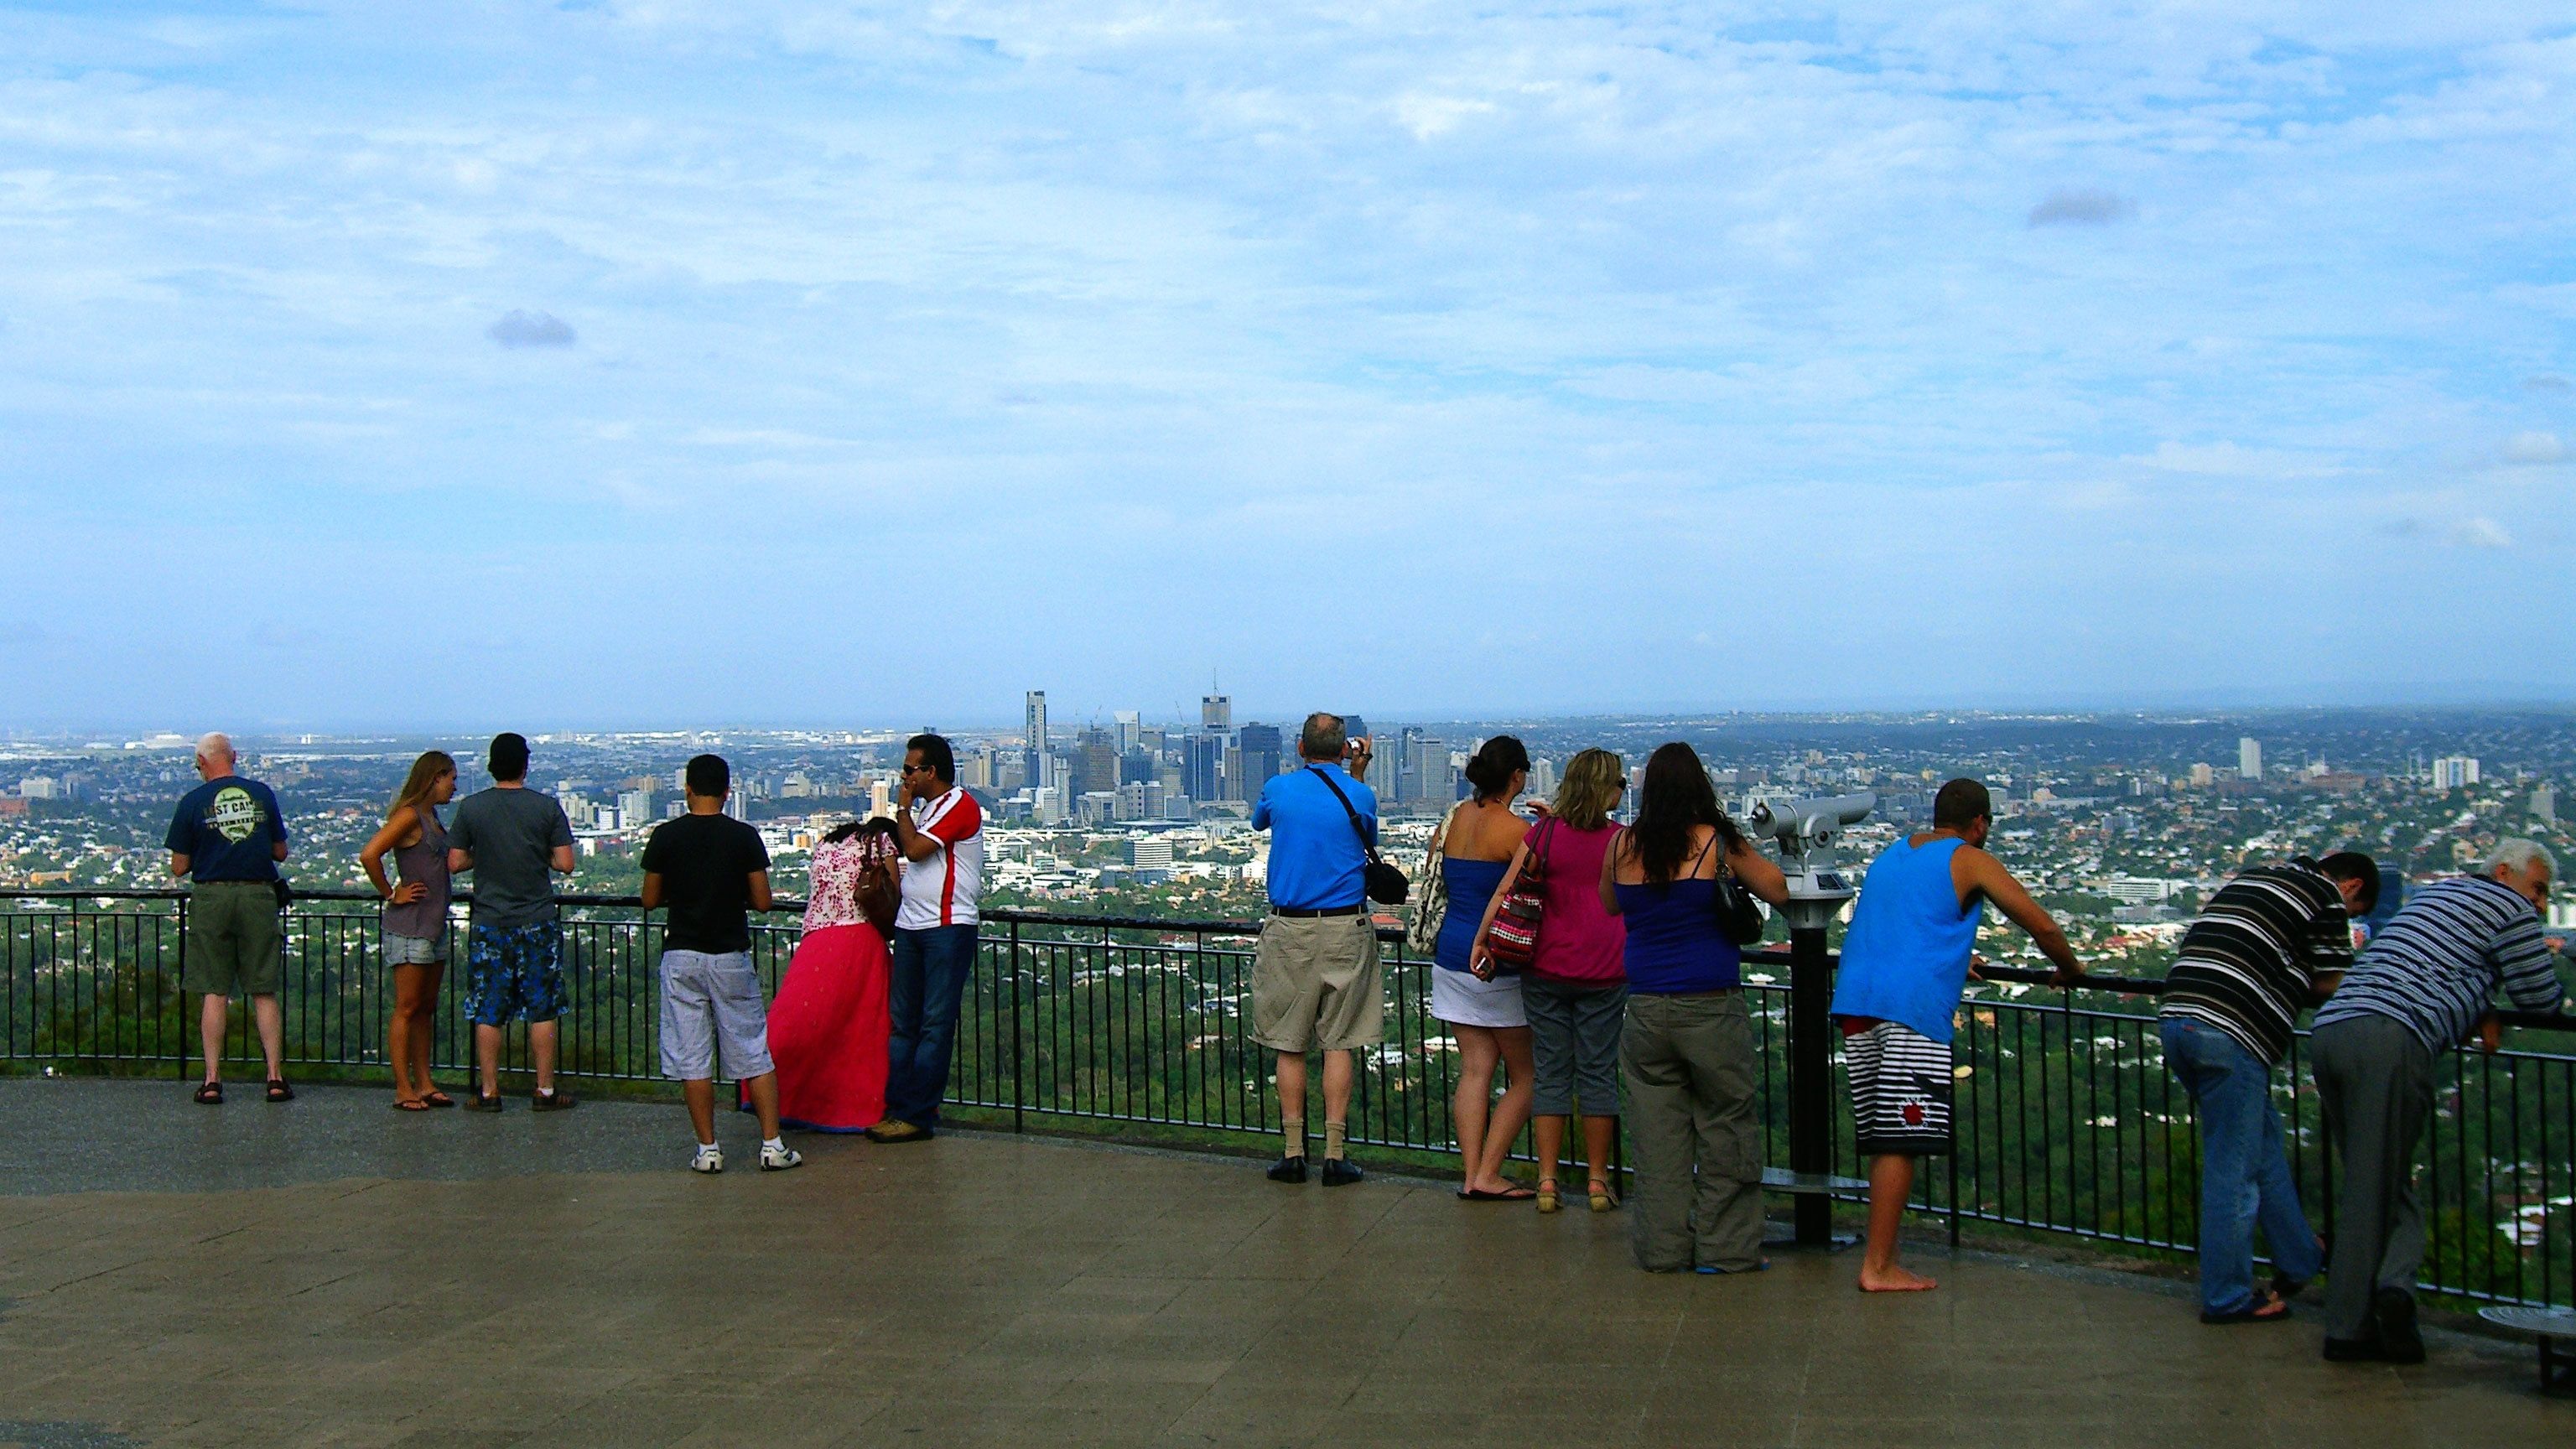 Tourist looking at the panoramic view of Brisbane from a view point